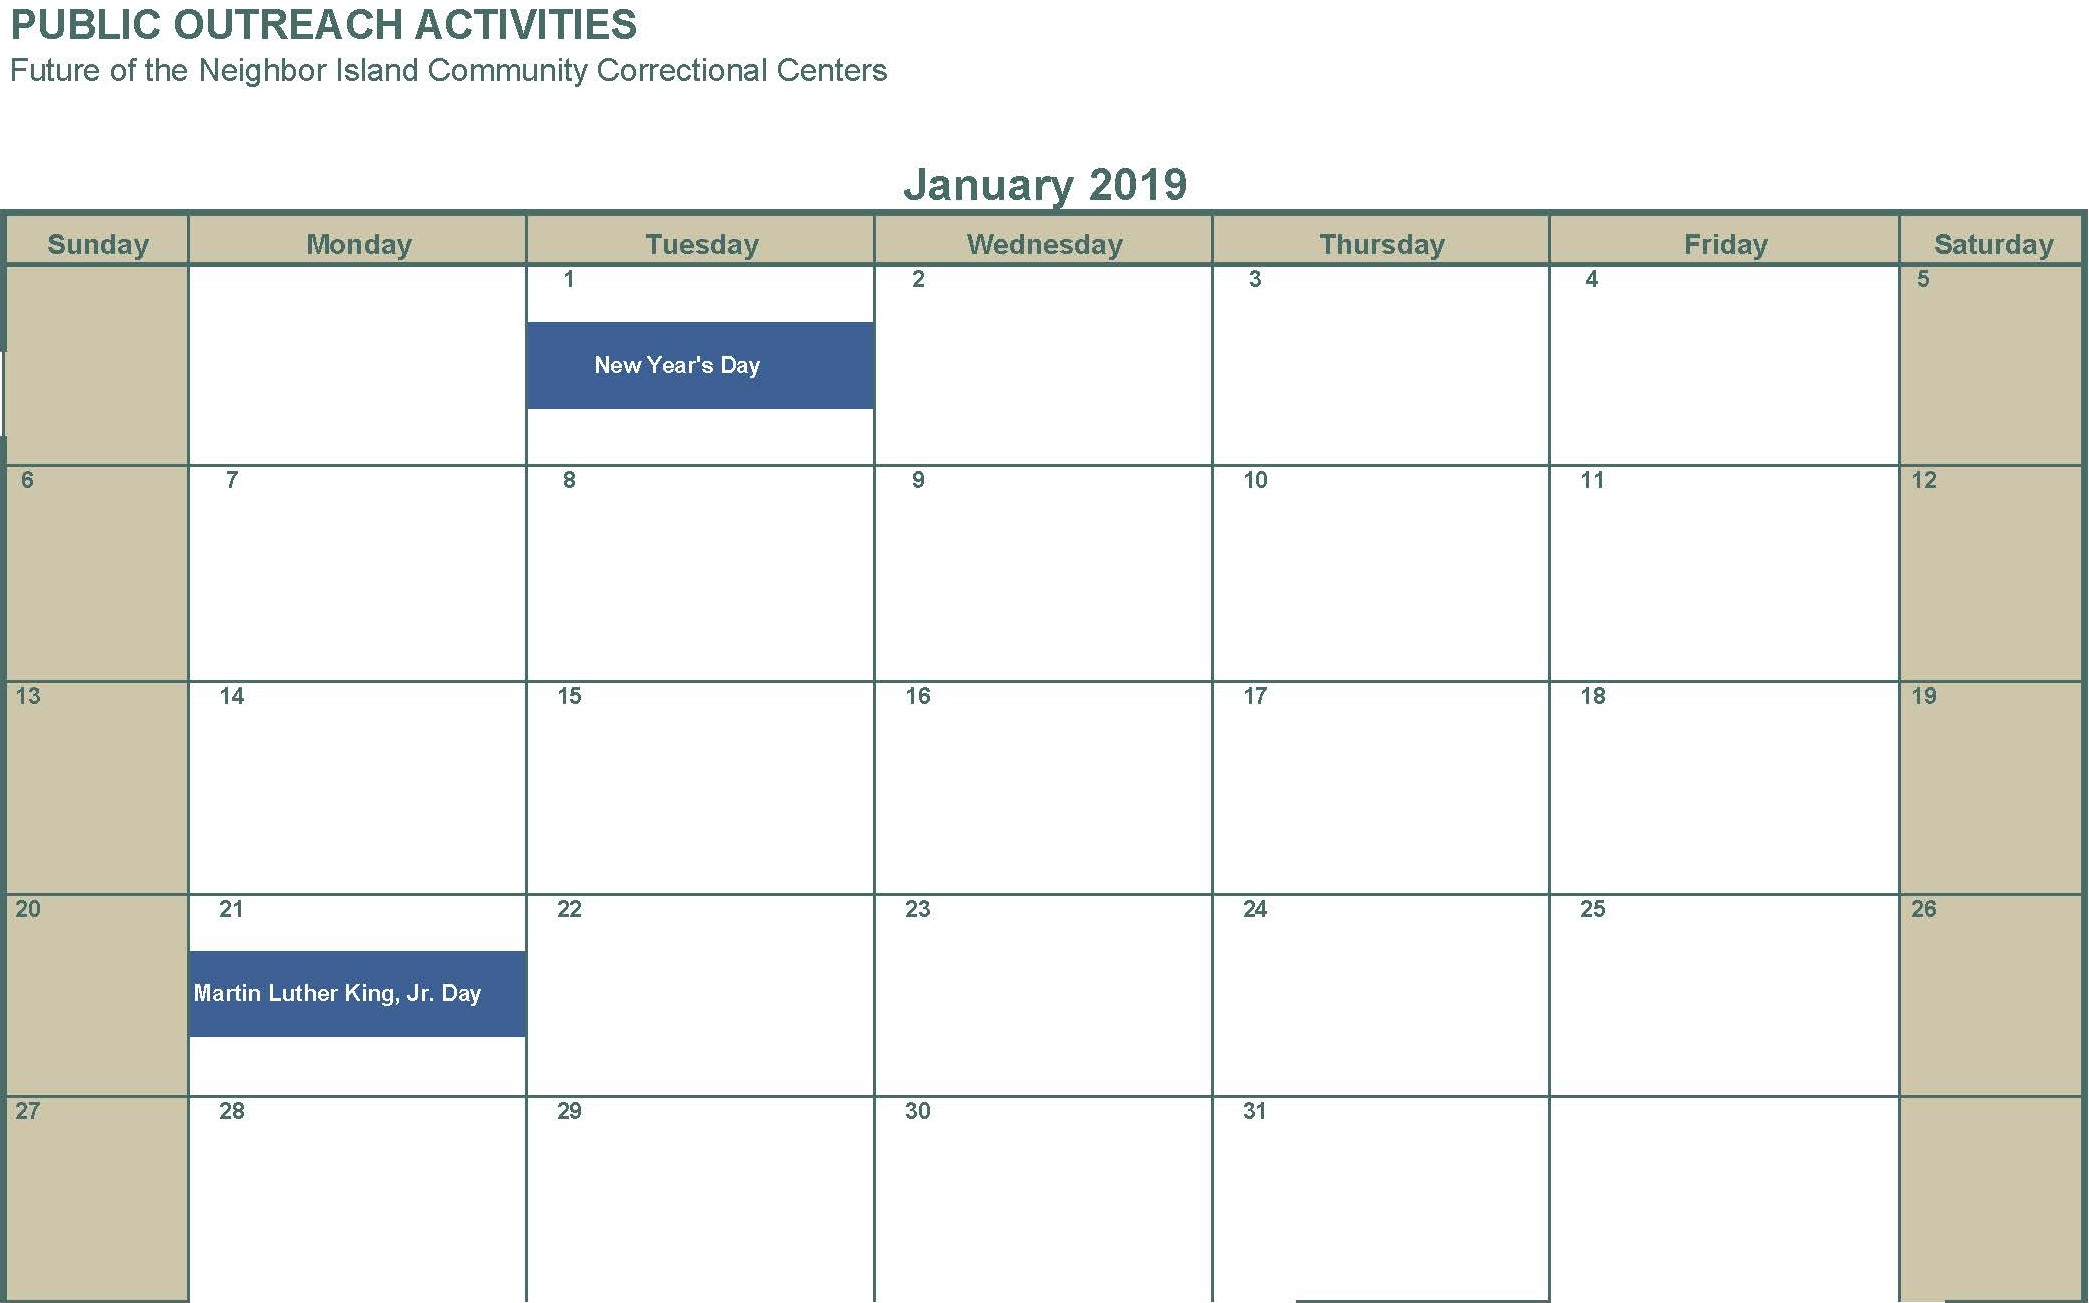 January 2019 No activities